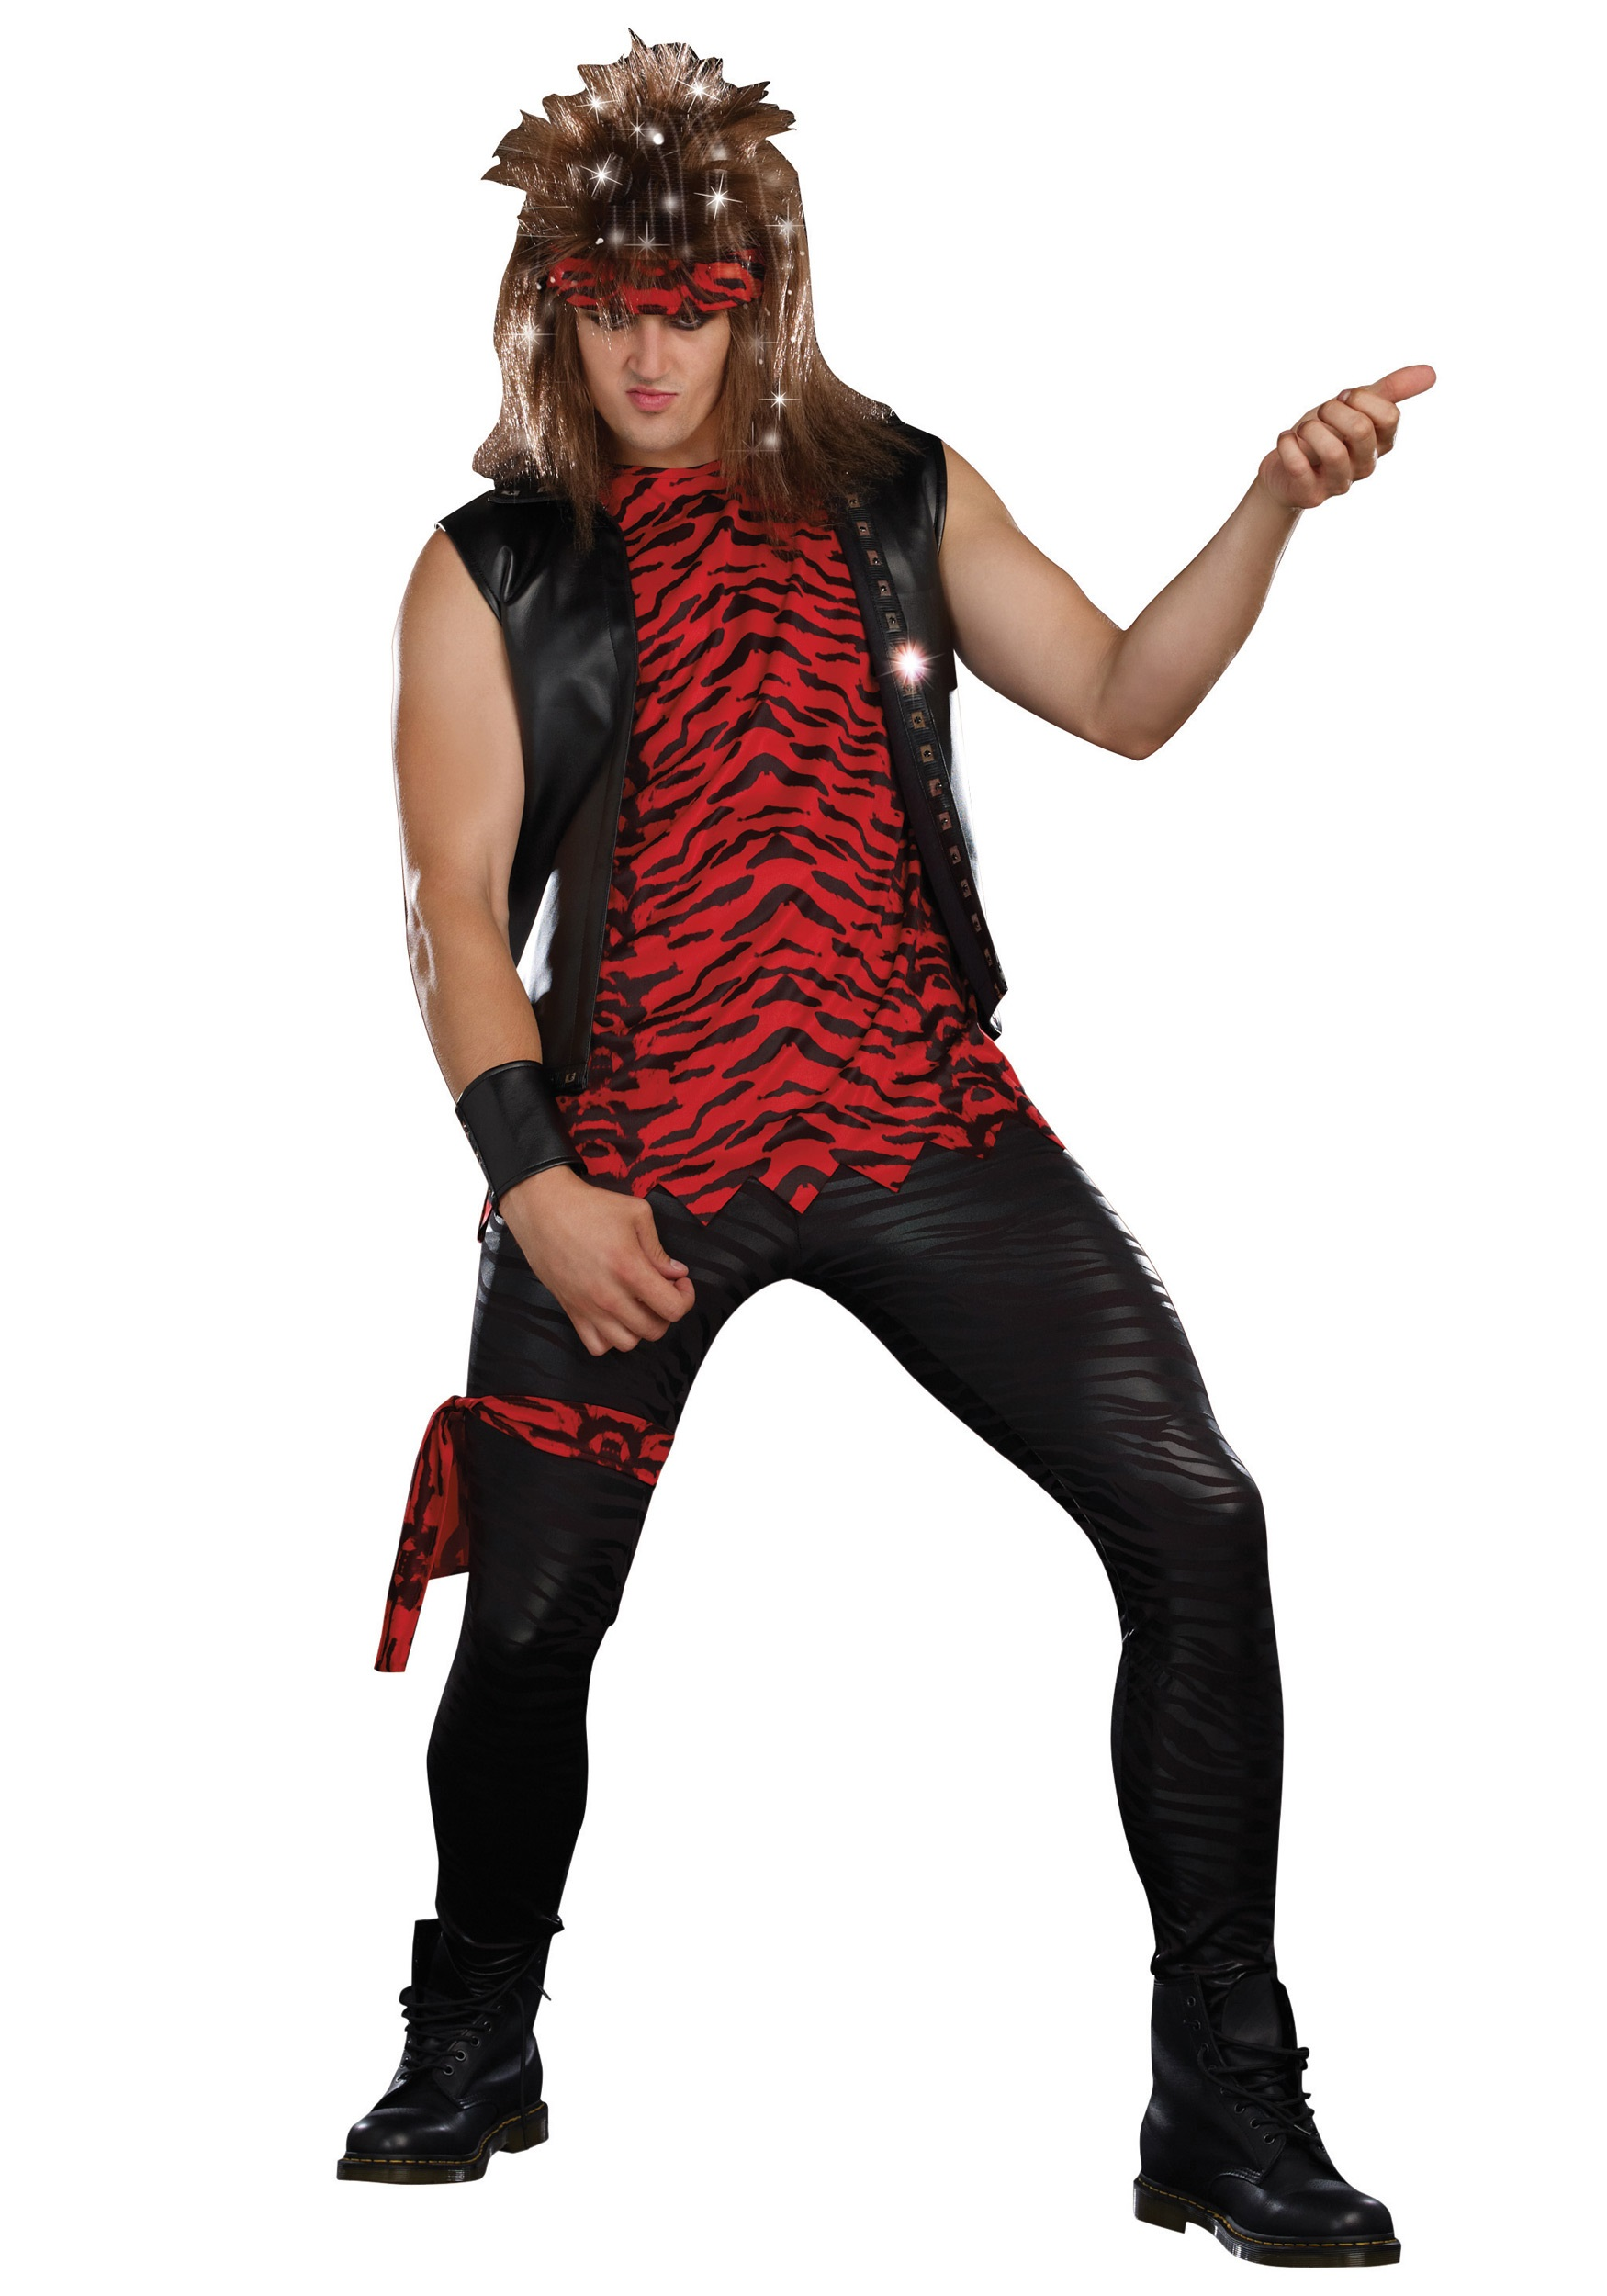 male rockstar costume halloween costume ideas 2018